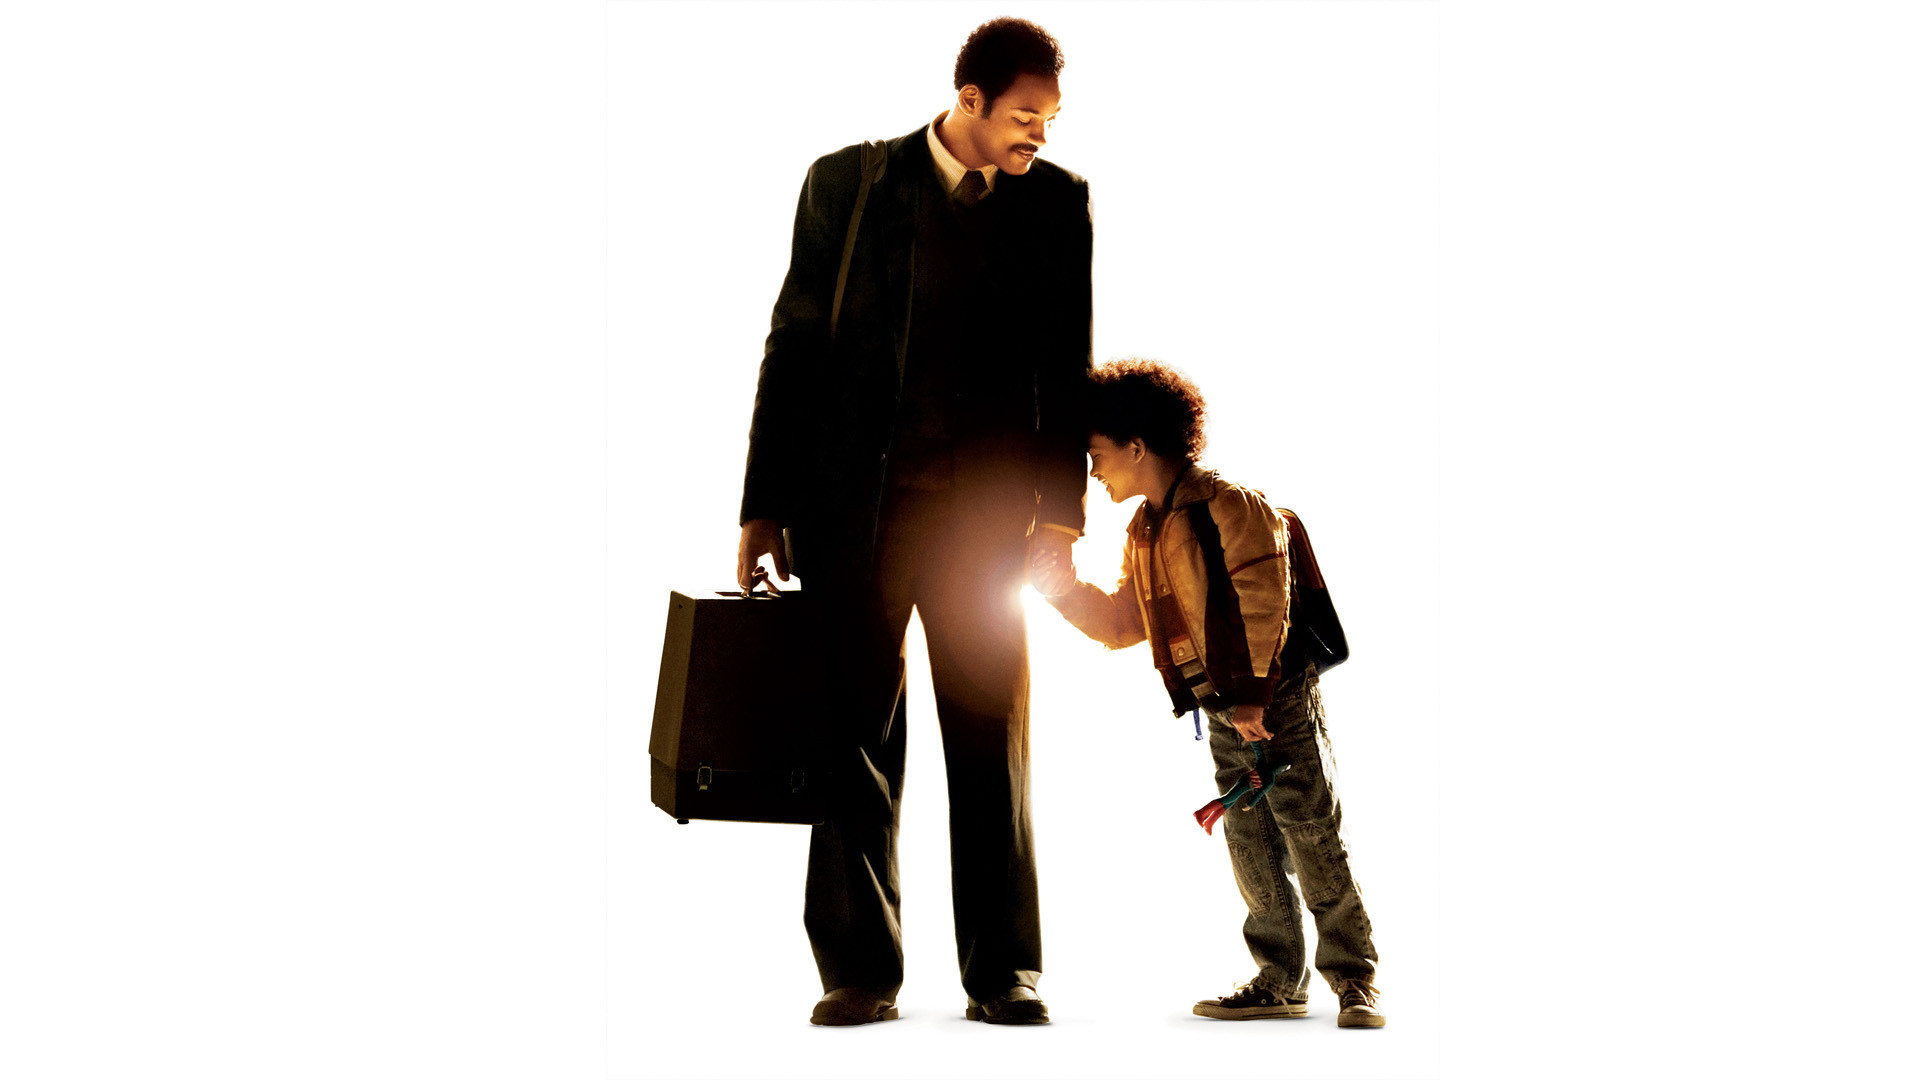 The Pursuit of Happyness 643.41 Kb